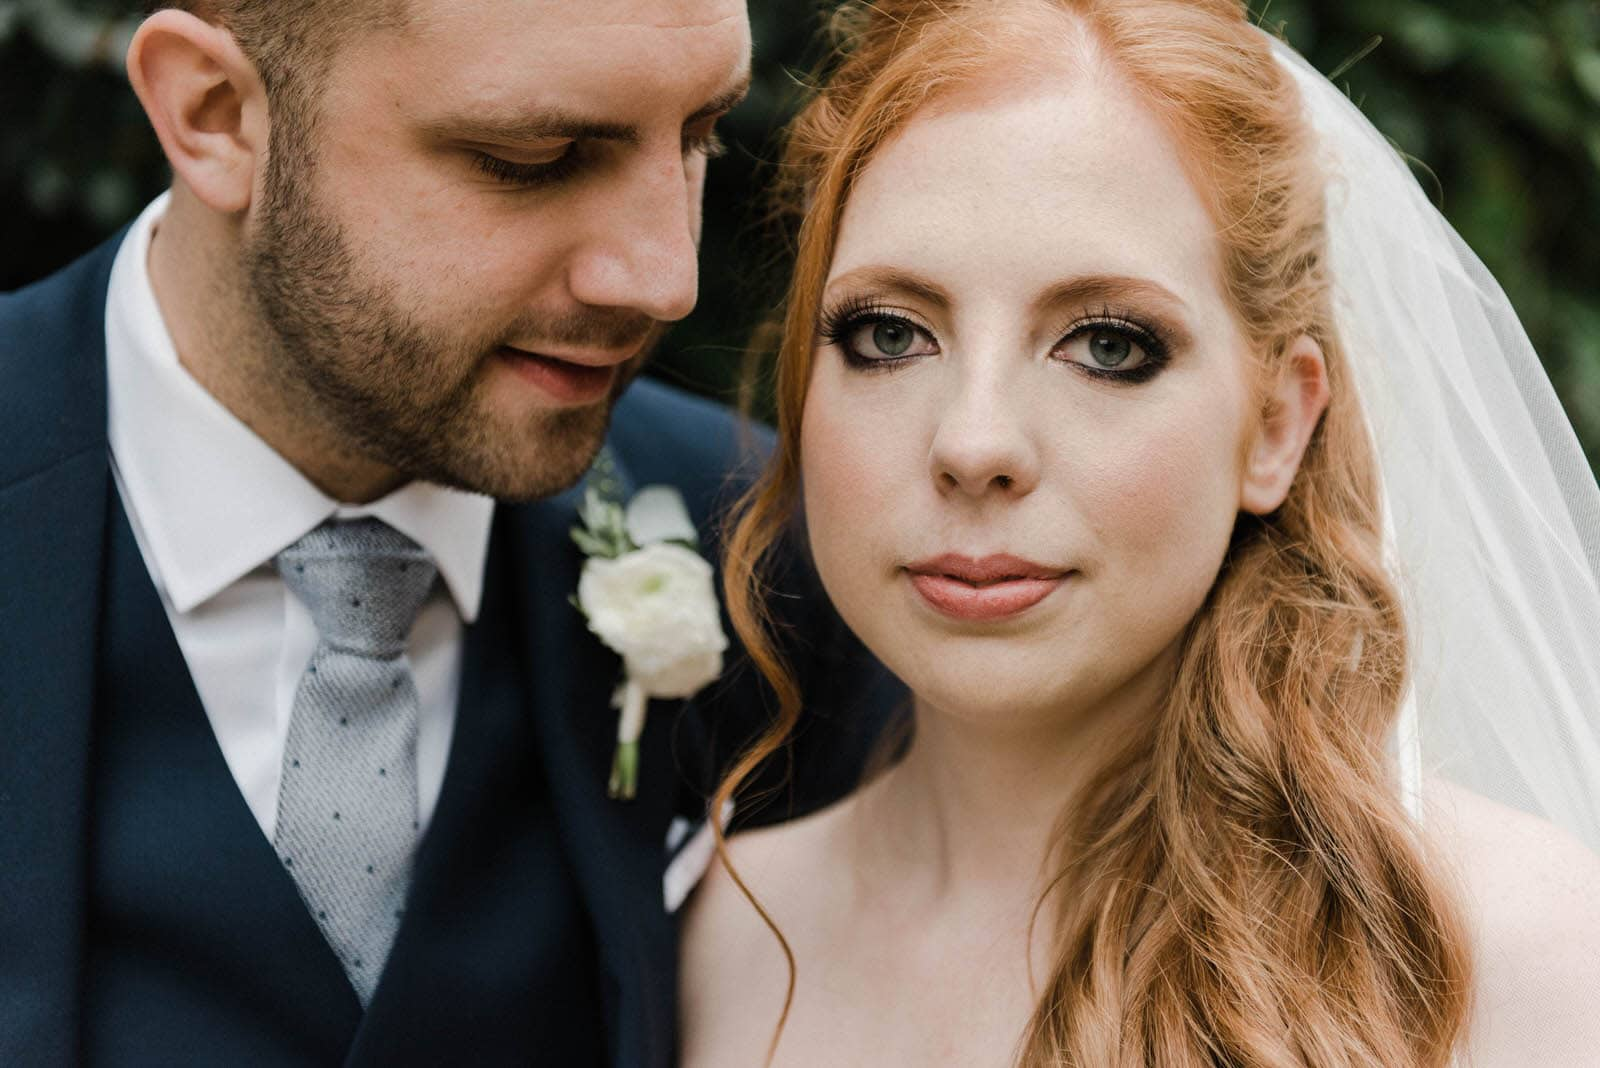 bride and groom portrait at Old Vicarage Boutique Wedding